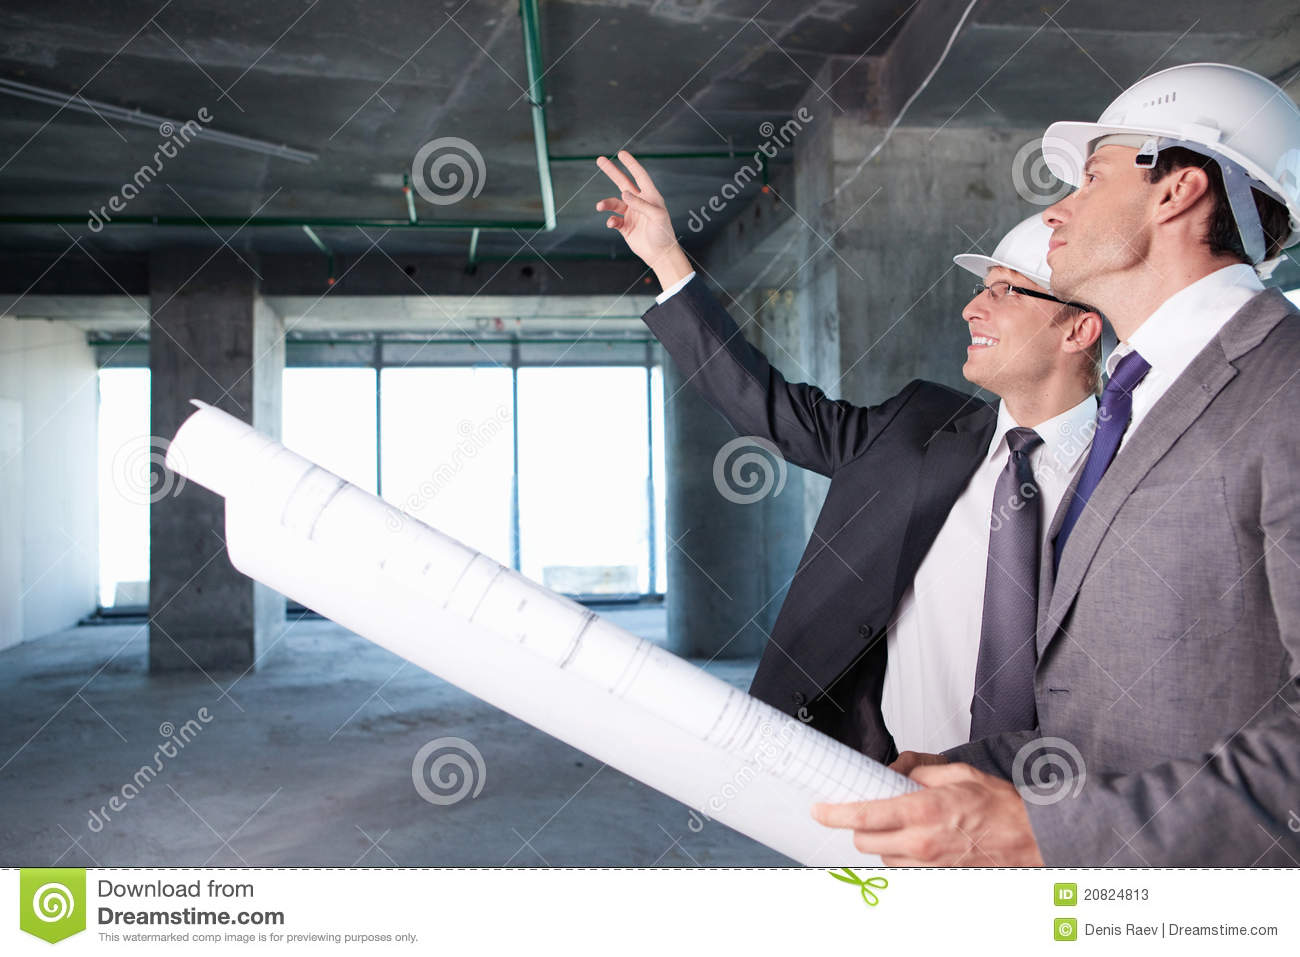 a description of an architect who designs and sometimes supervises the construction of buildings What are the tasks of an architect but generall they design and sometimes supervise the construction of primarily an architect designs buildings.